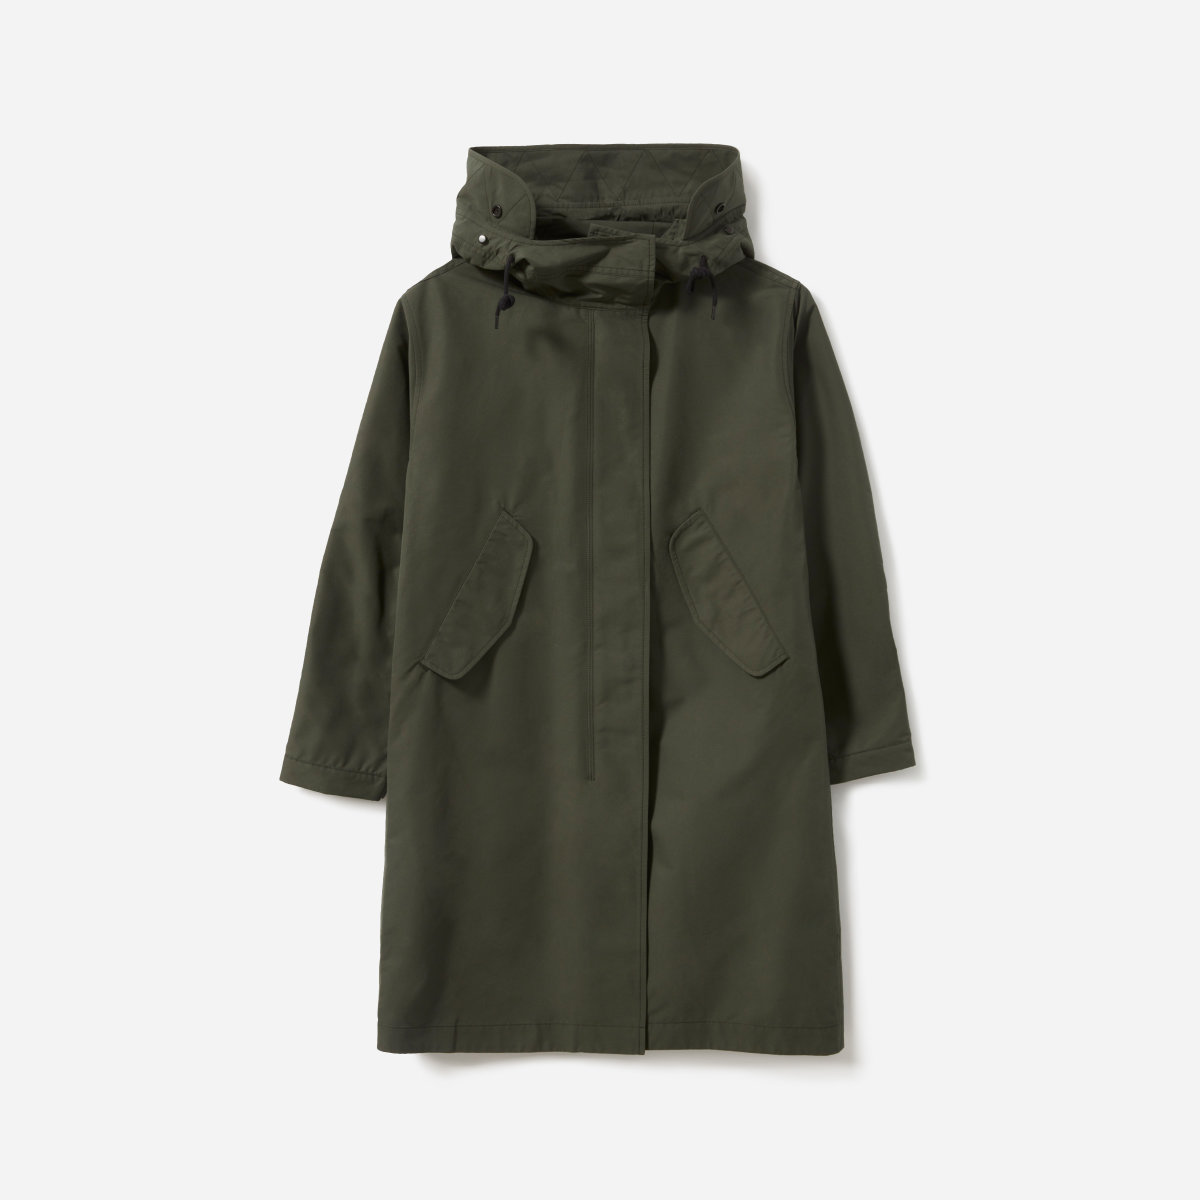 water resistant coat - When picking out a water resistant coat, make sure the color can be worn in spring and fall.